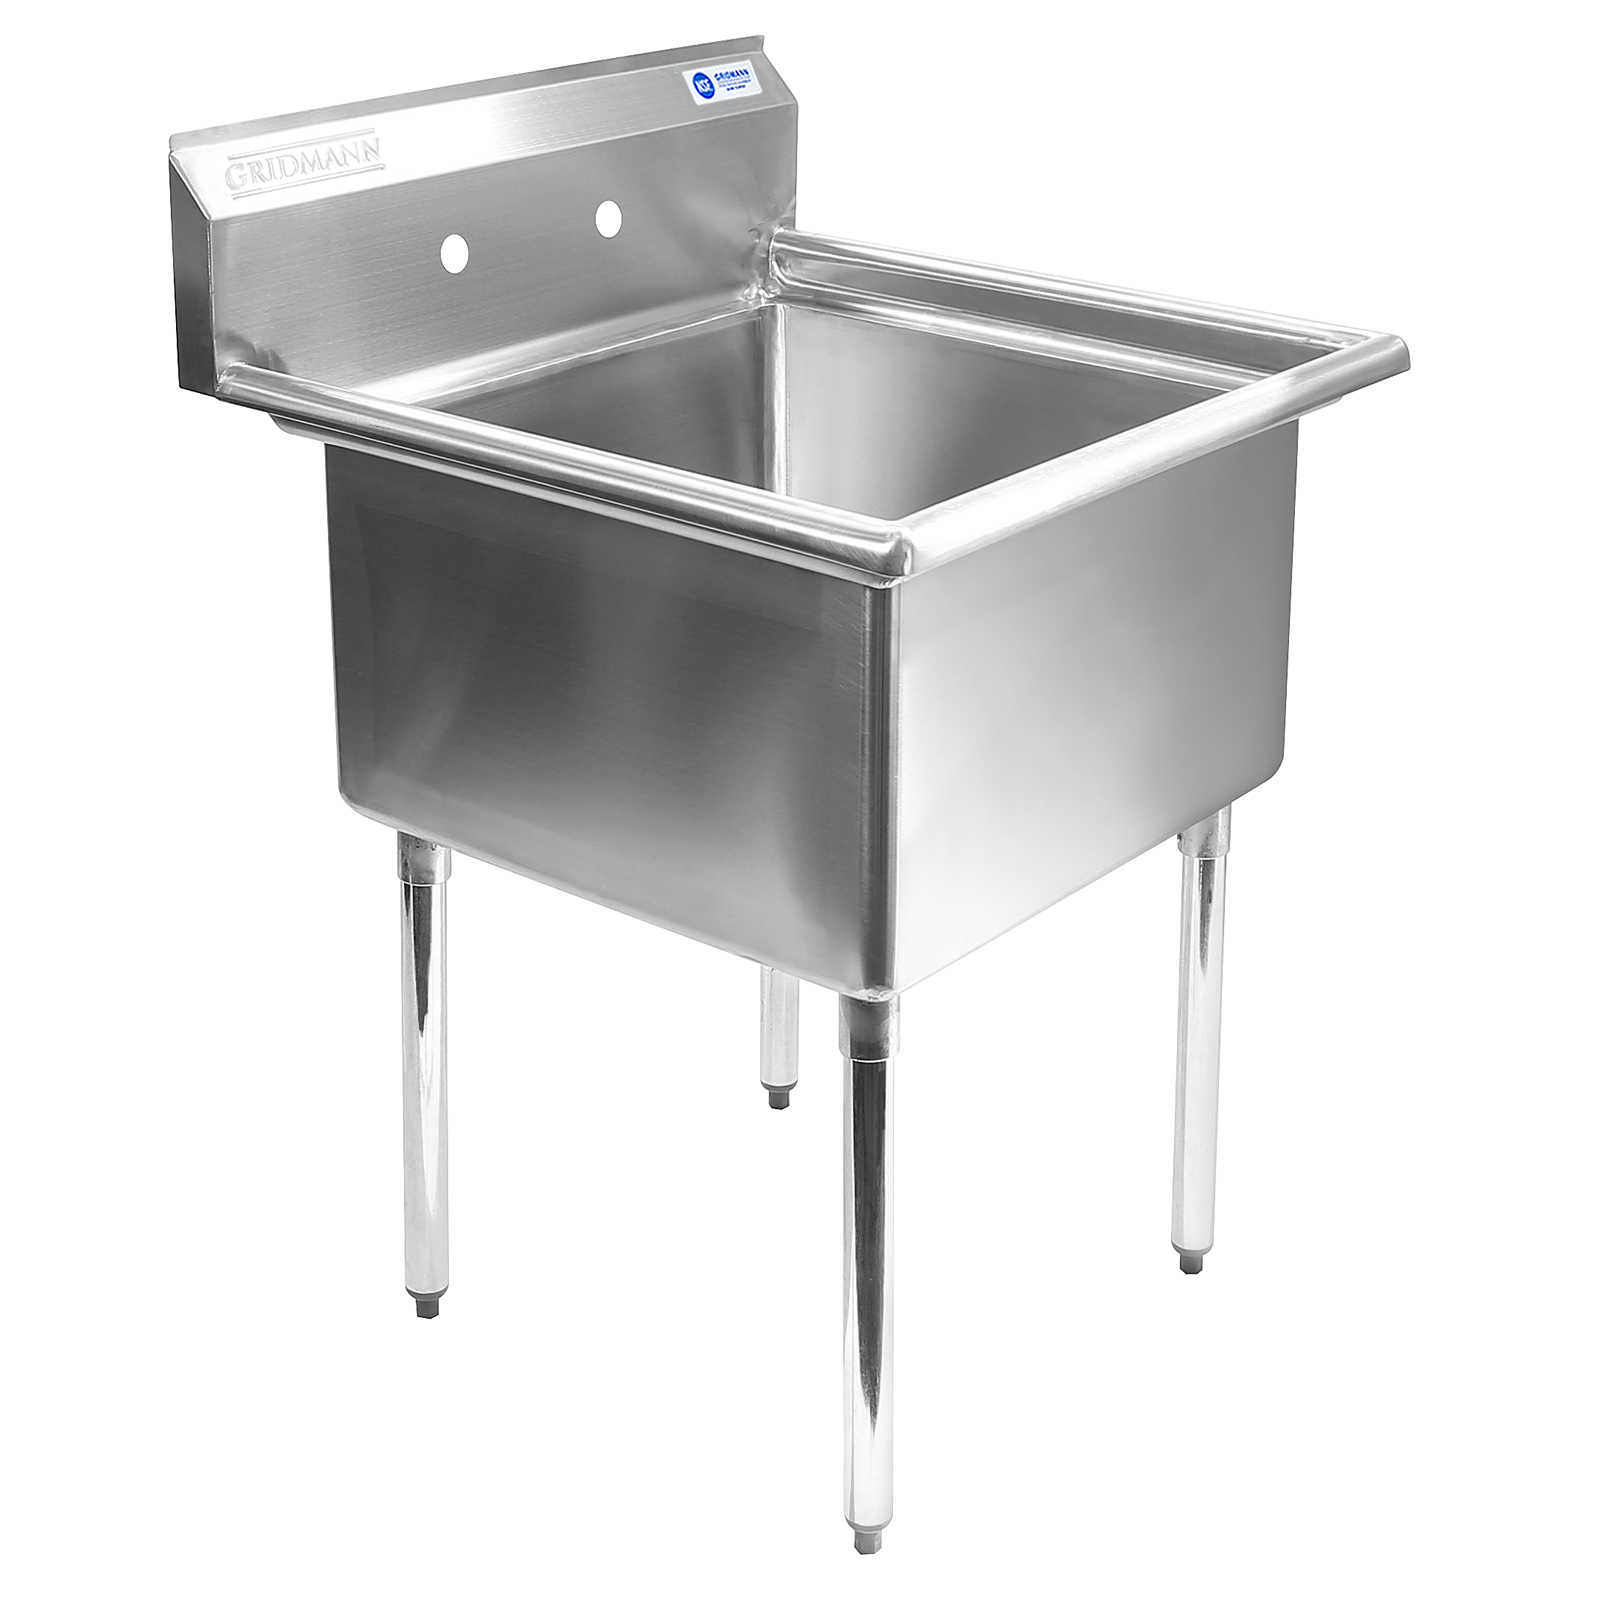 commercial kitchen sink lowes remodeling gridmann 1 compartment nsf stainless steel prep utility 30 in